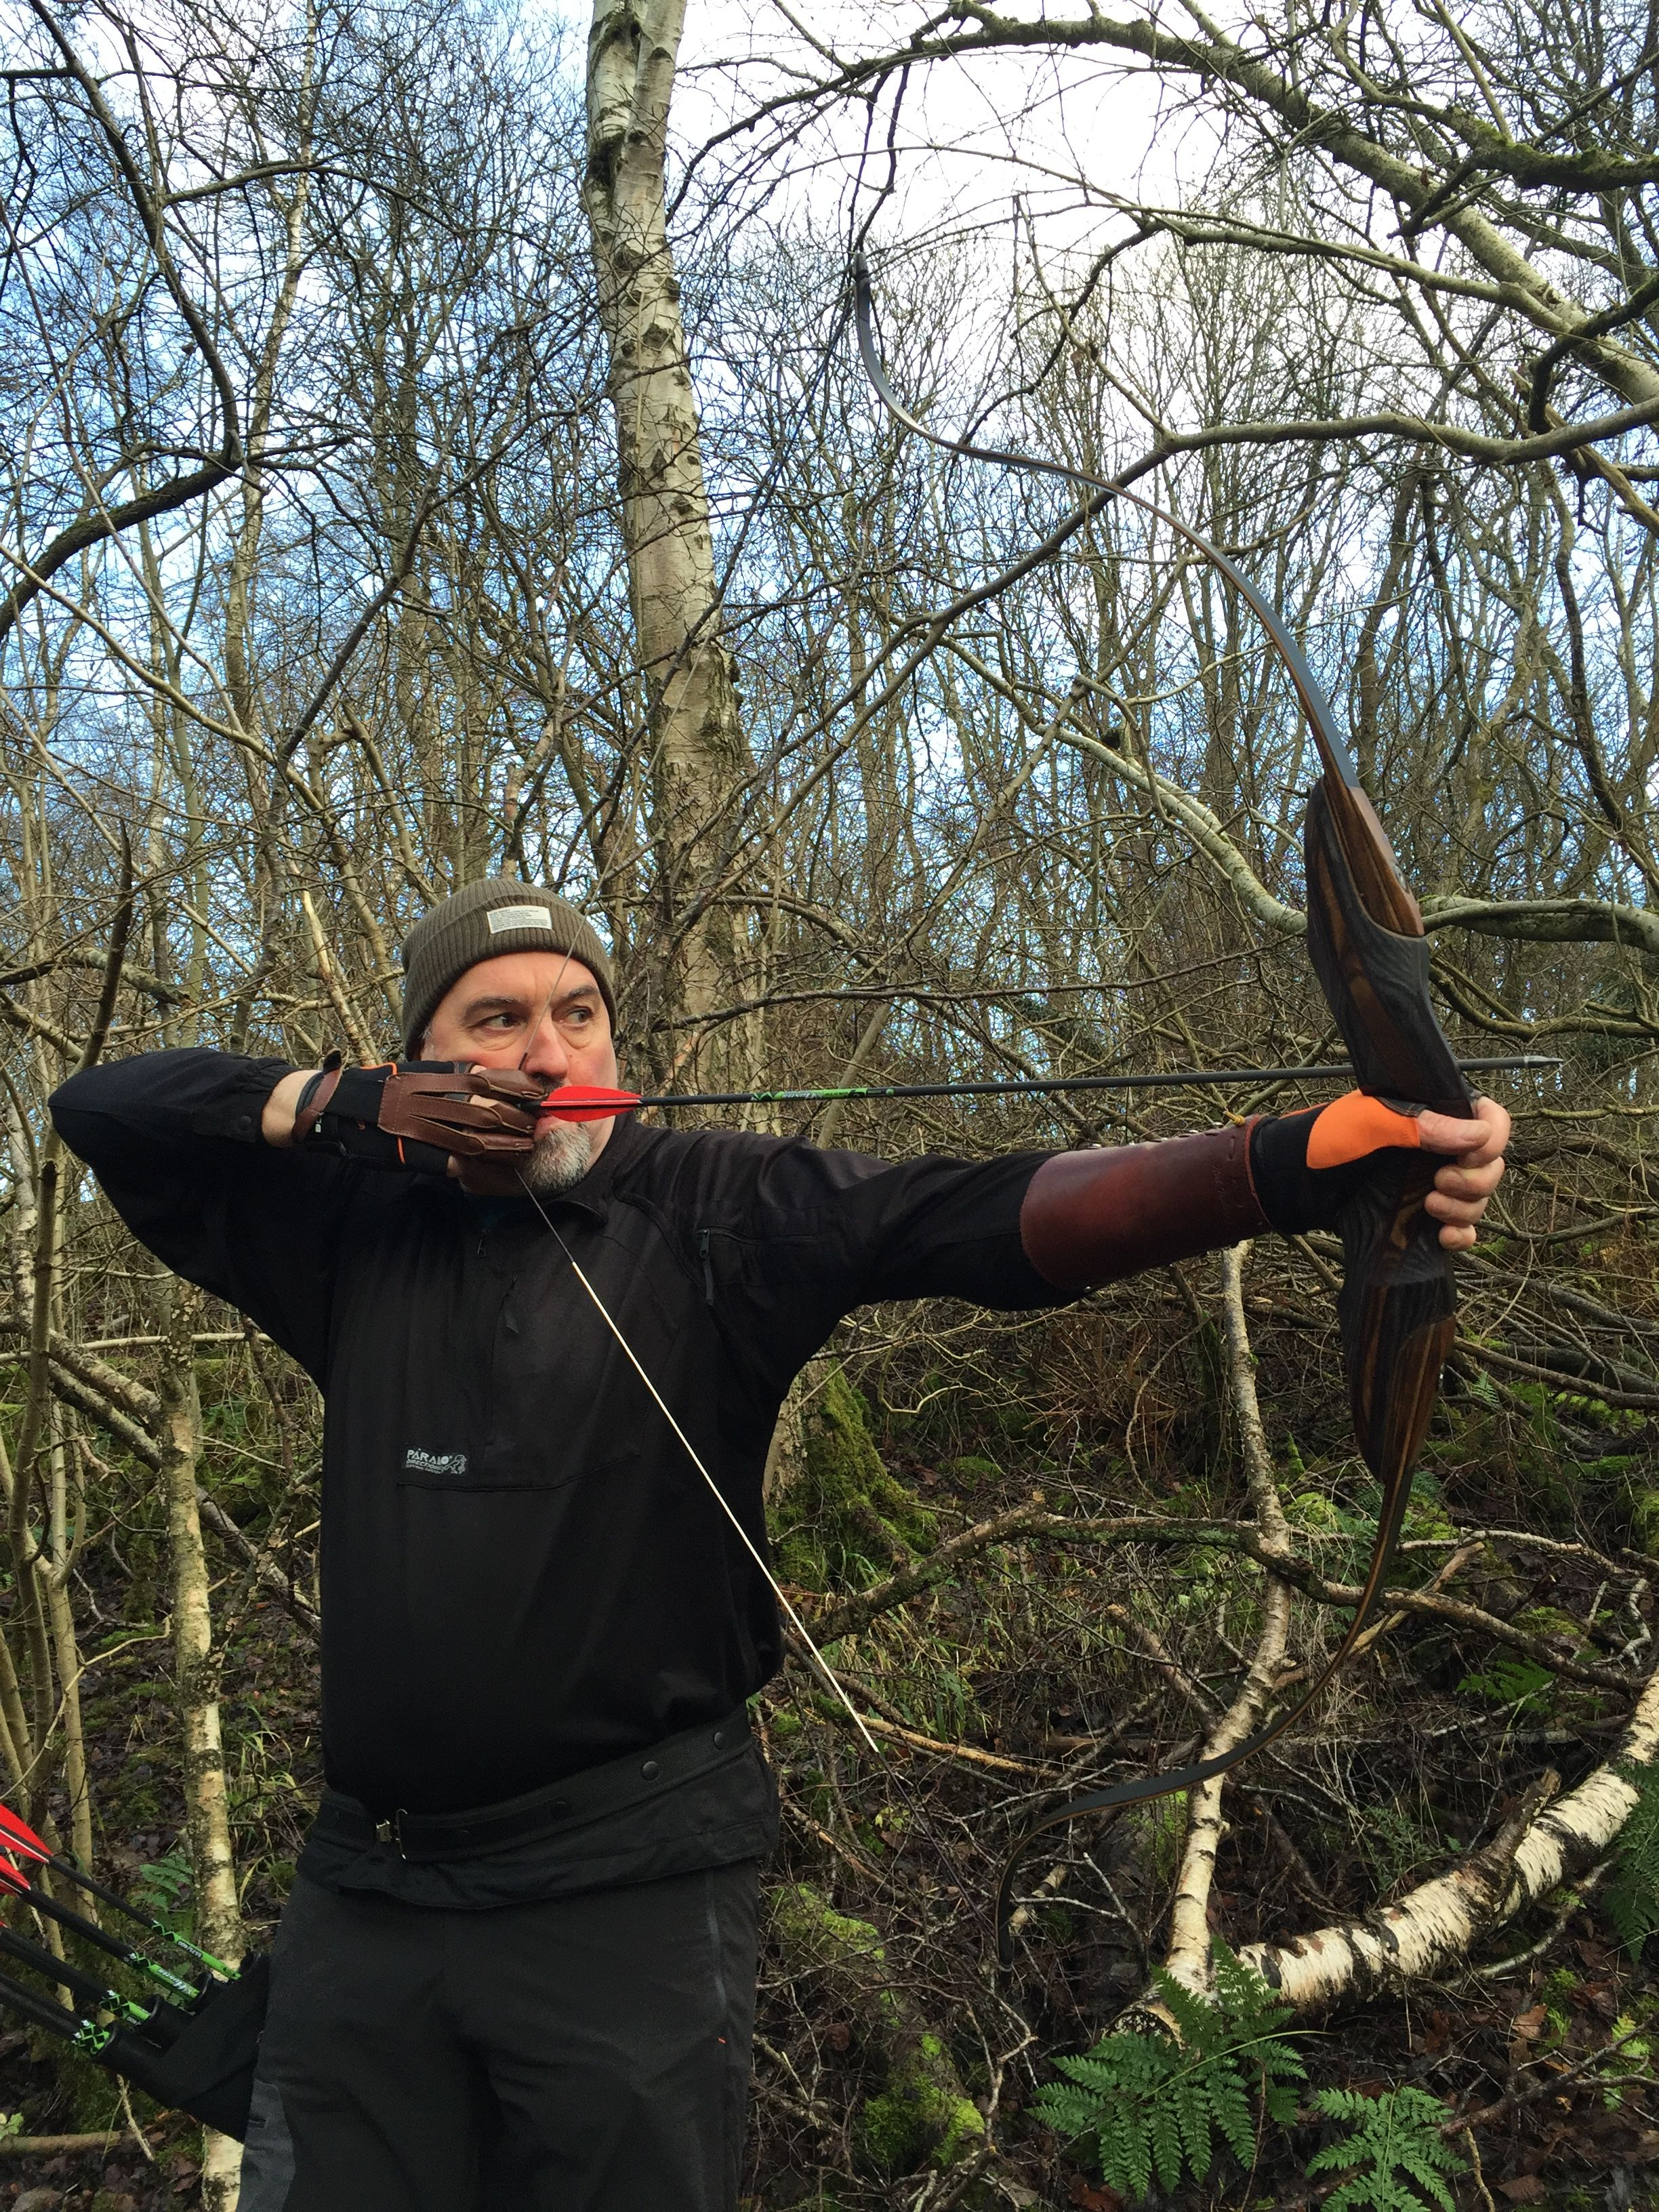 Full draw, second finger anchored in corner of mouth - bow canted